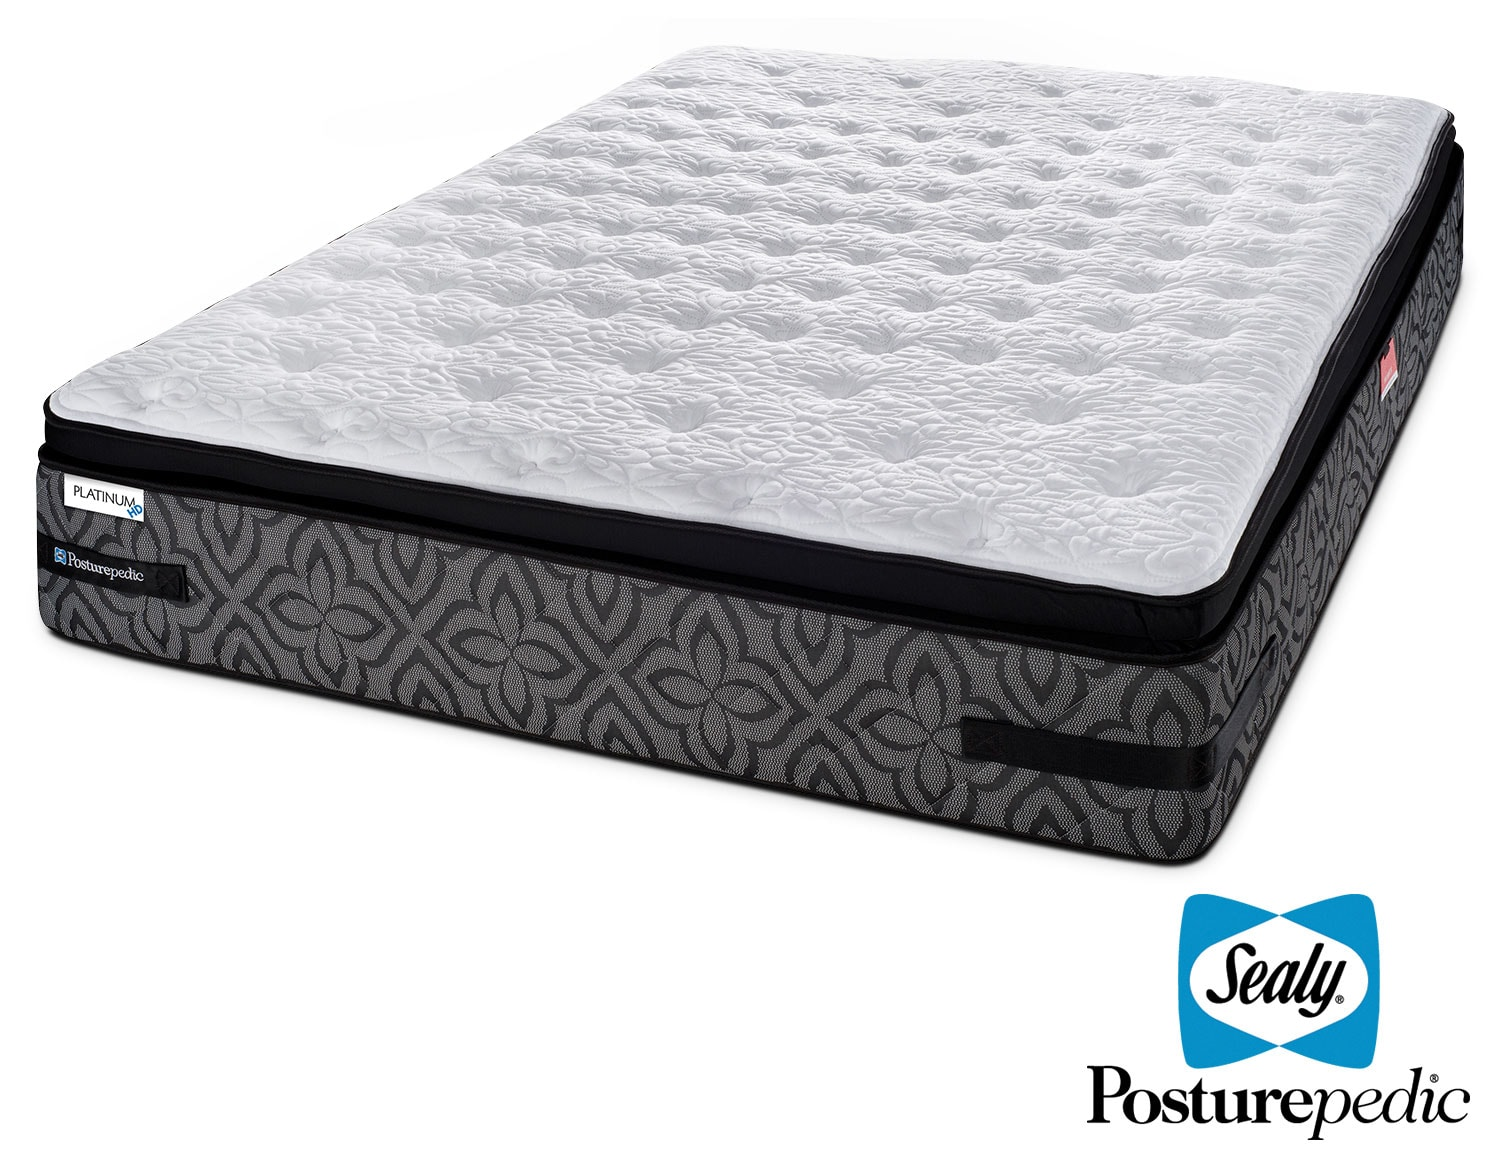 Mattresses and Bedding - Sealy Posturepedic 2 K Firm King Mattress